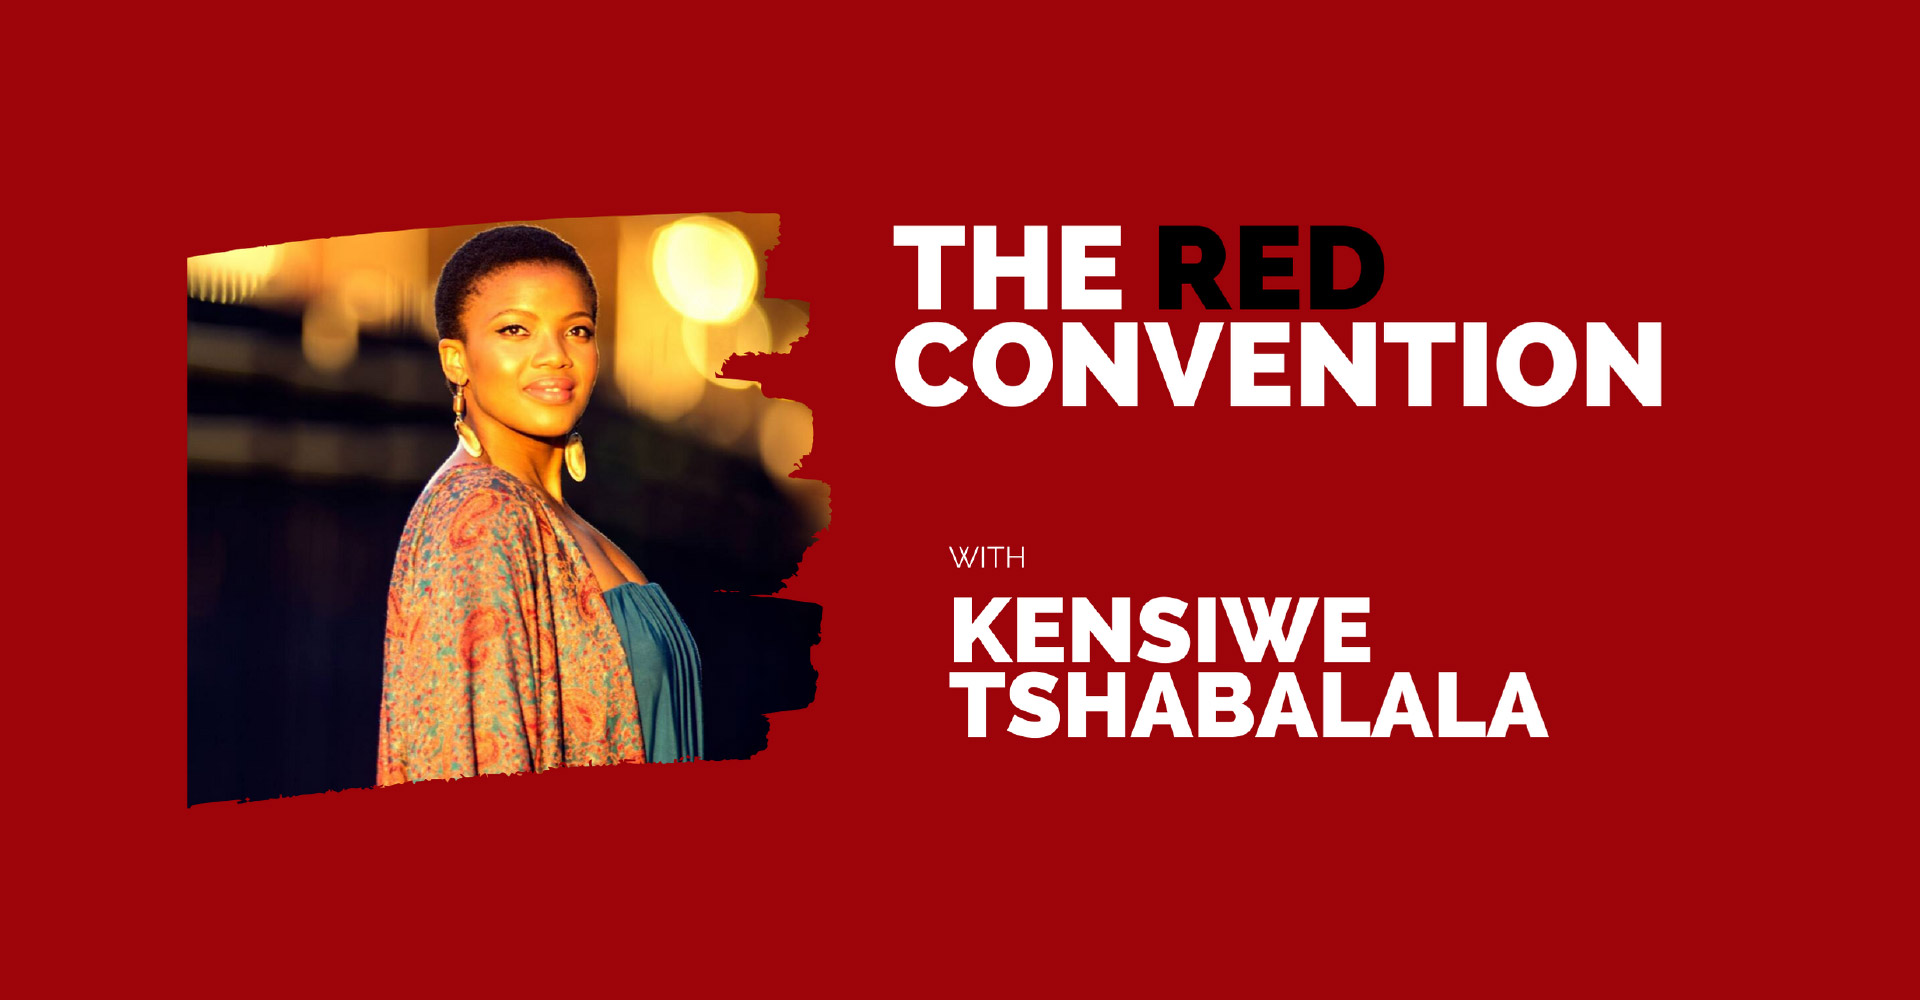 The Red Convention Kensiwe Tshabalala